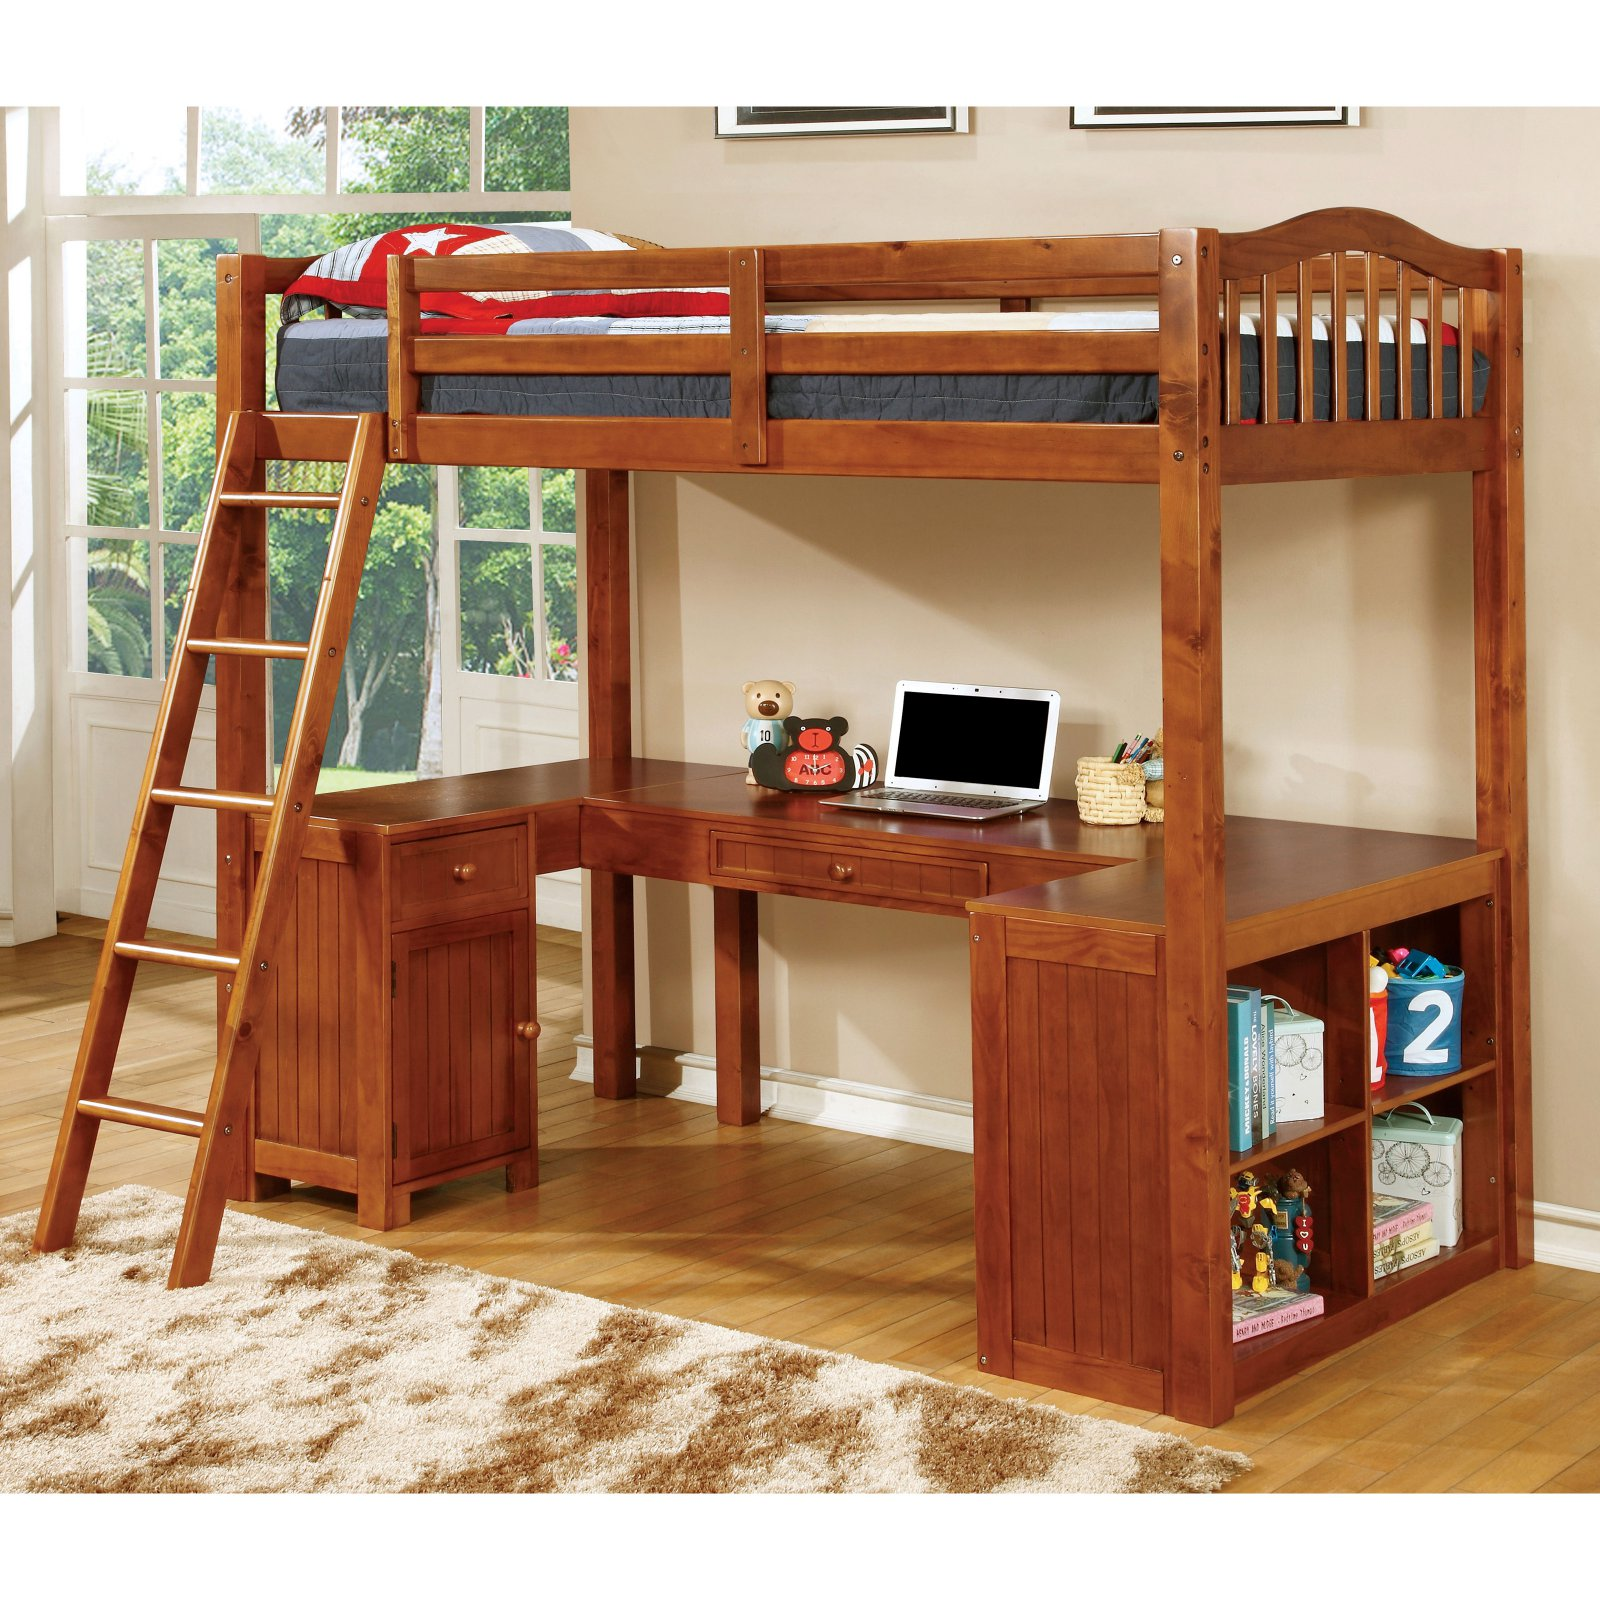 Furniture of America Robbins Loft Bed with Workstation